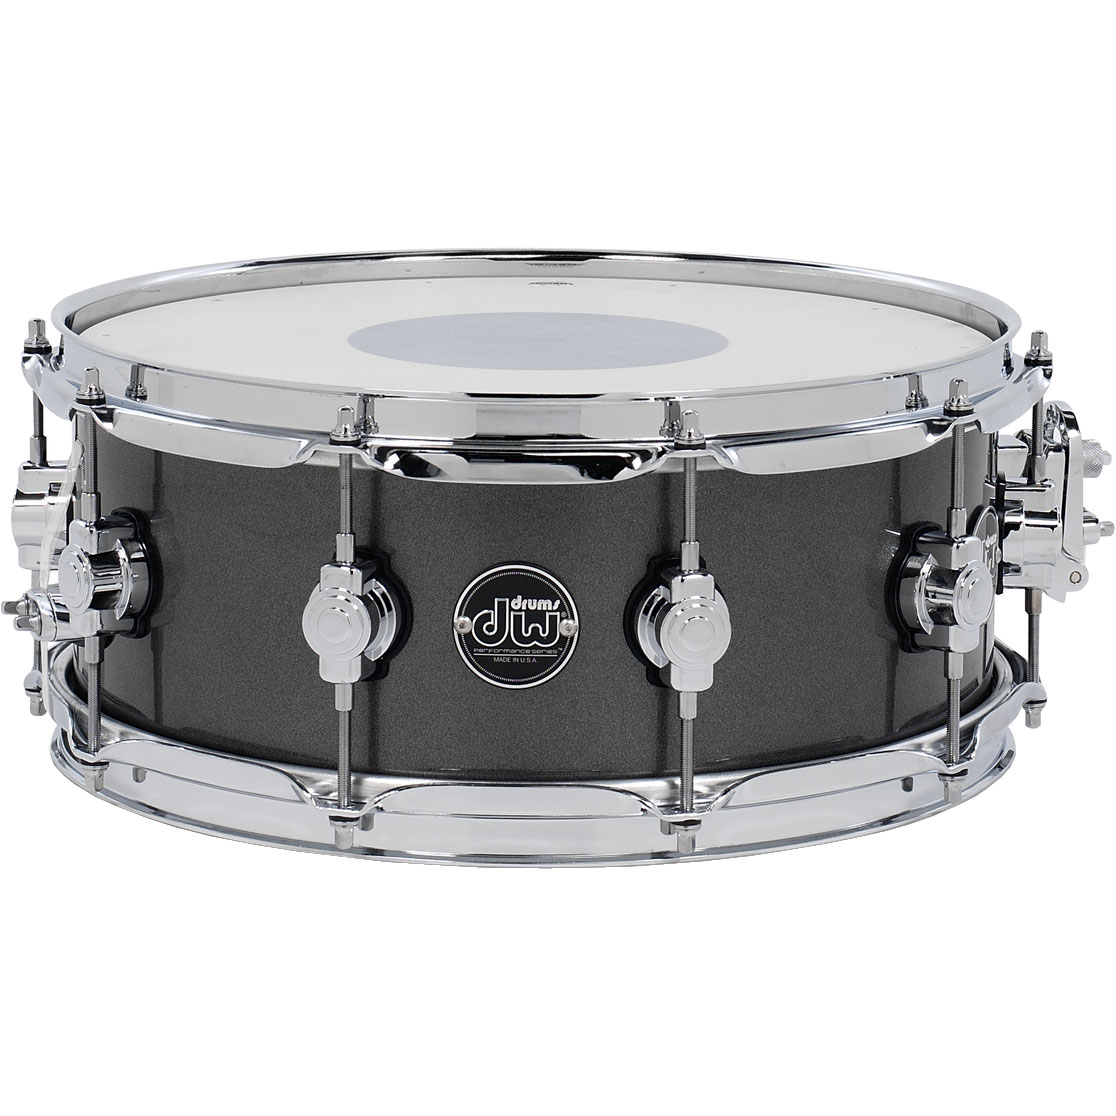 "DW 5.5"" x 14"" Performance Series Snare Drum in Specialty Lacquer Finish"